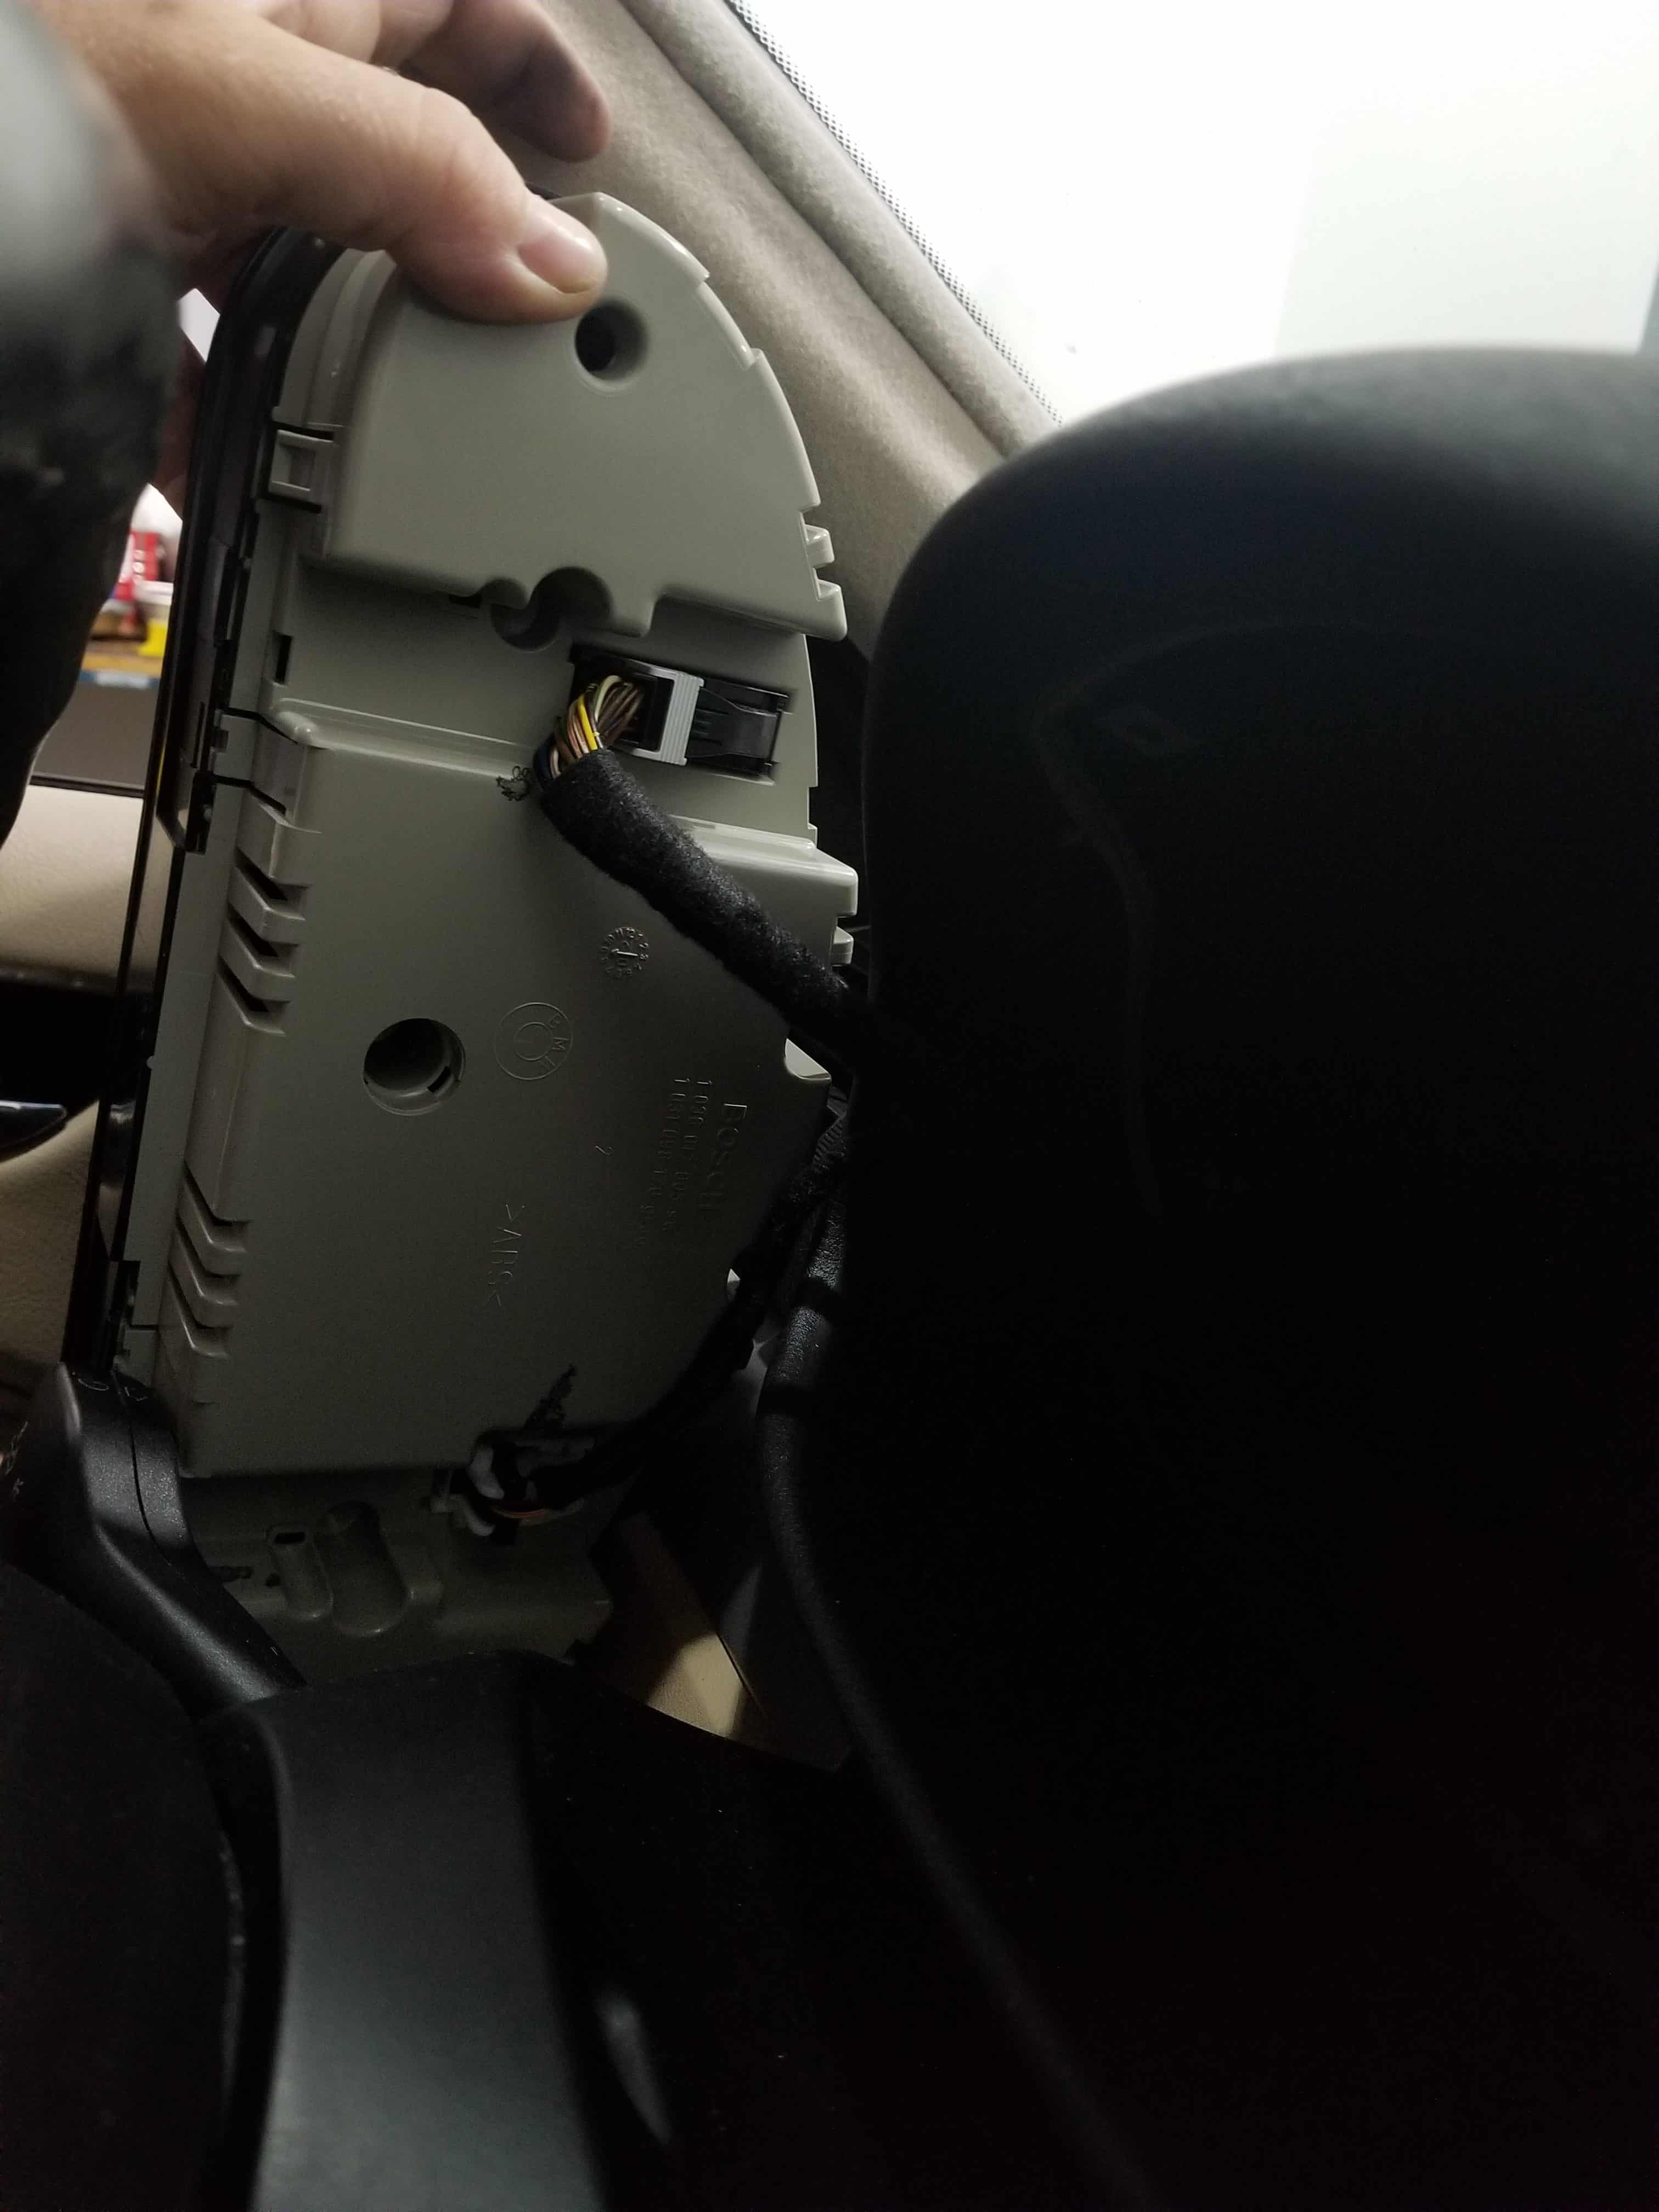 remove instrument cluster from dashboard